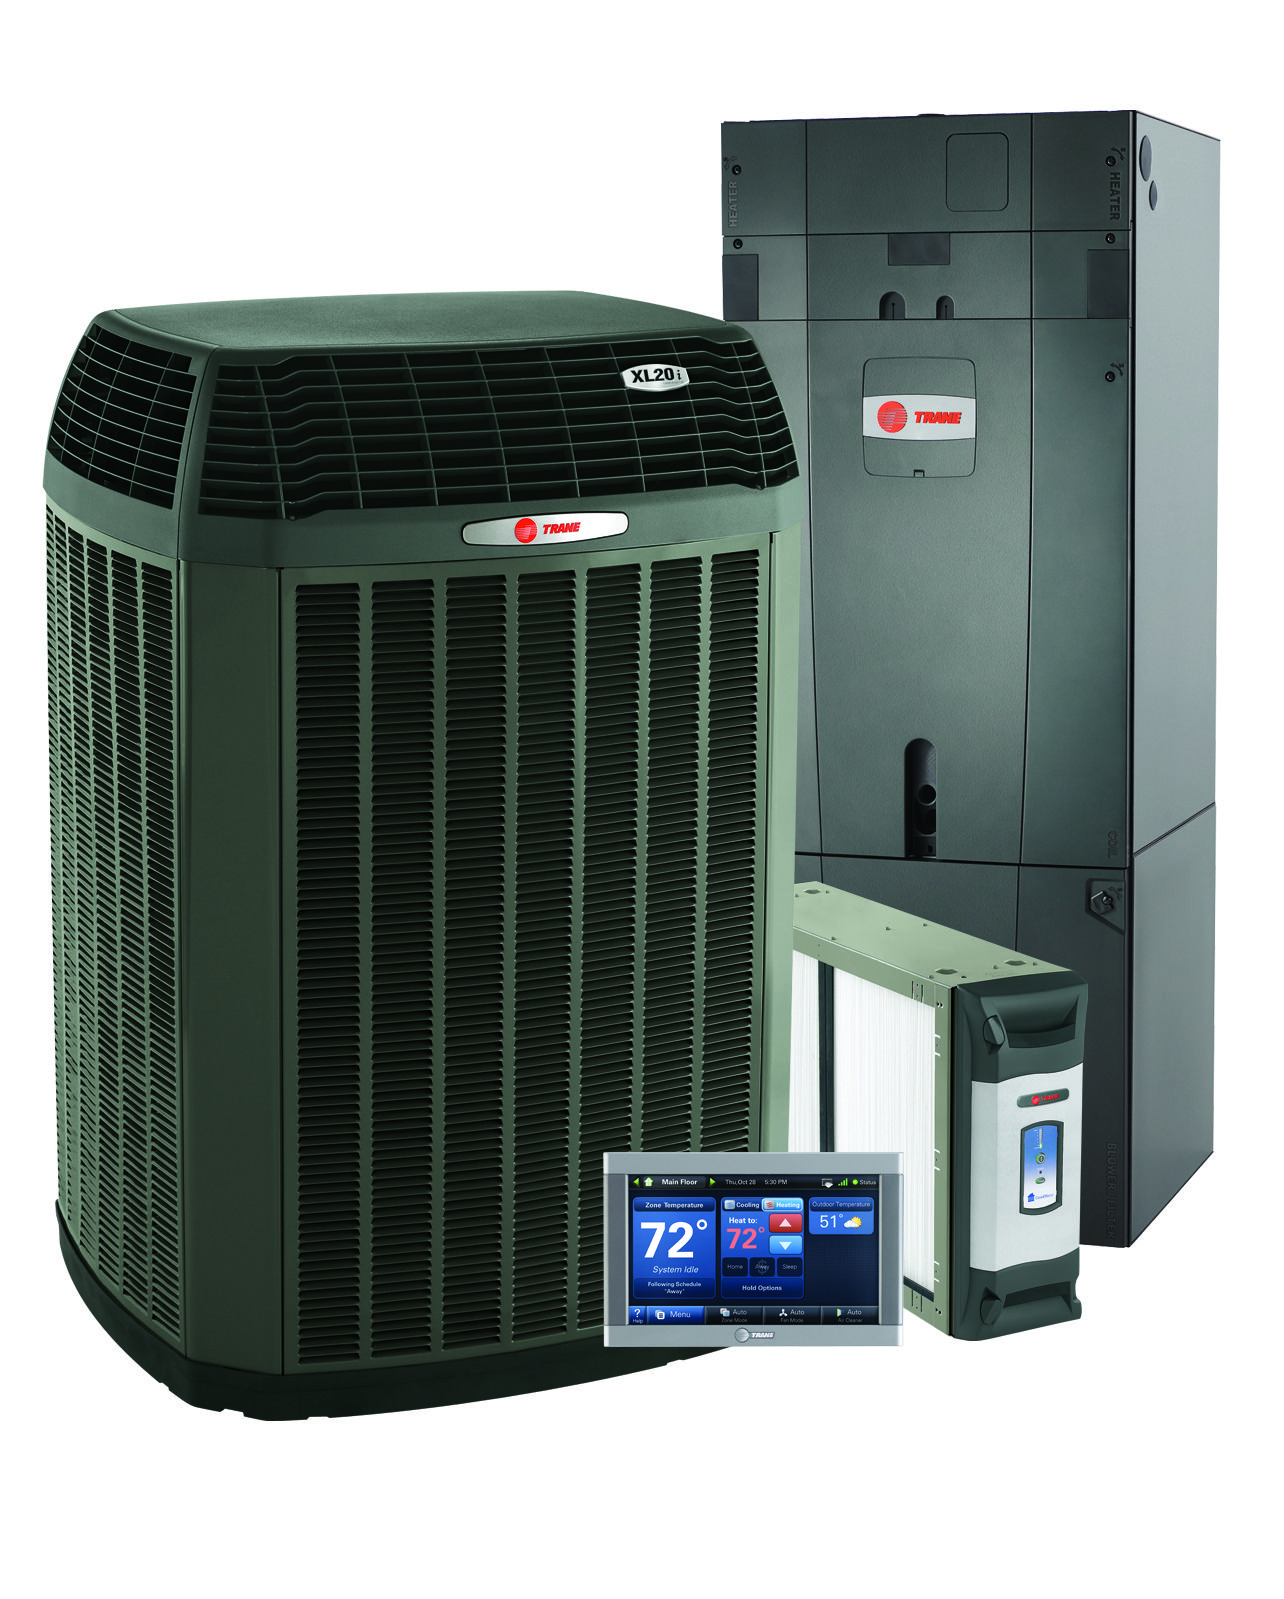 Trane Heat Pump Reviews Why These Systems Are Great In Phoenix Http Www Ontimeairaz Com Trane Heat Pum Air Conditioner Prices Furnace Repair Heating Repair